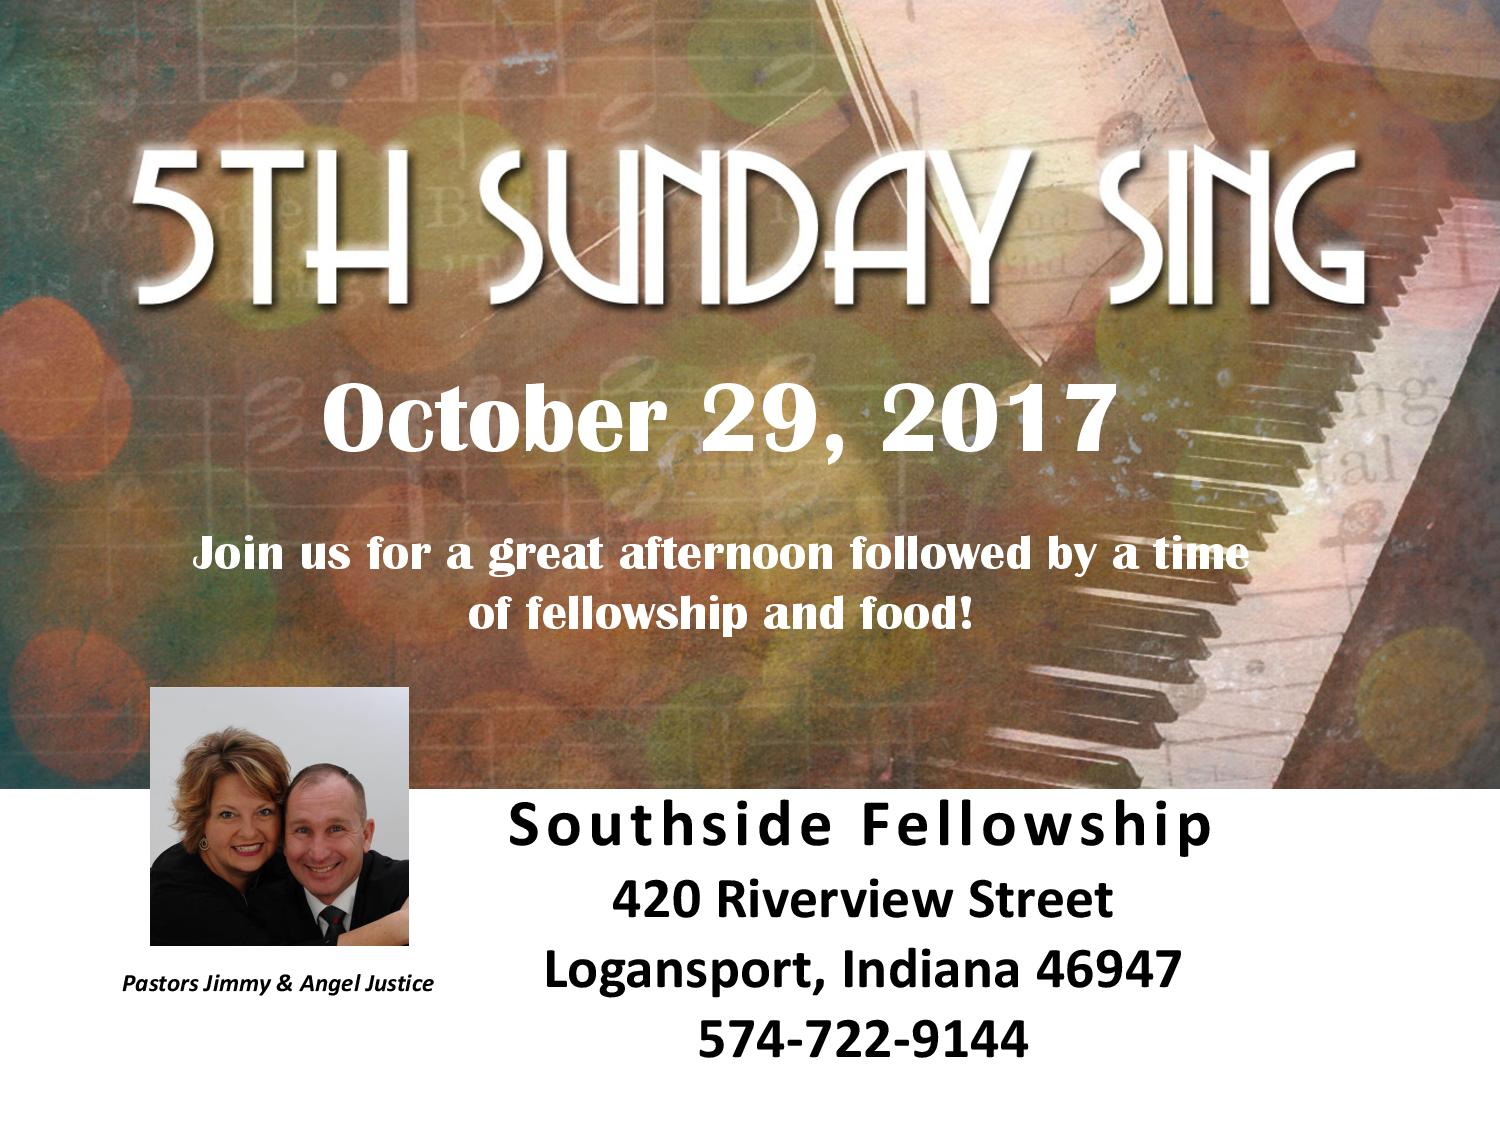 5th Sunday Sing @ Southside Fellowship